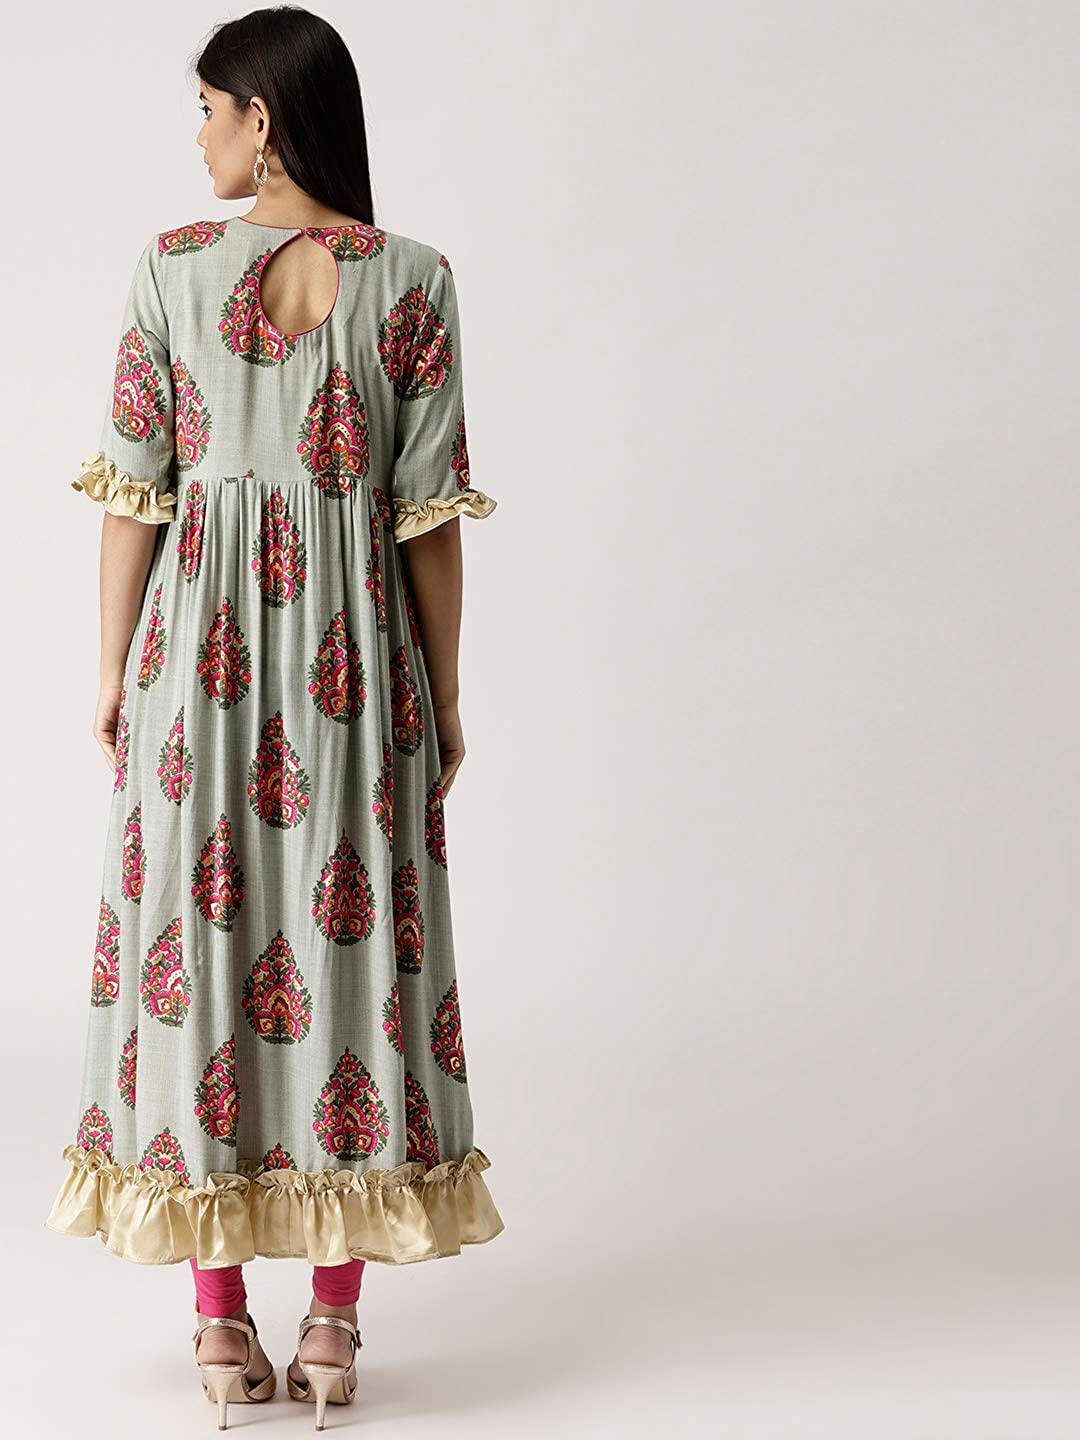 8c1f5c75ca Amazon.com: Leda Grey Printed Indian Pakistani Kurtis Ethnic Kurti Women  Dress: Clothing